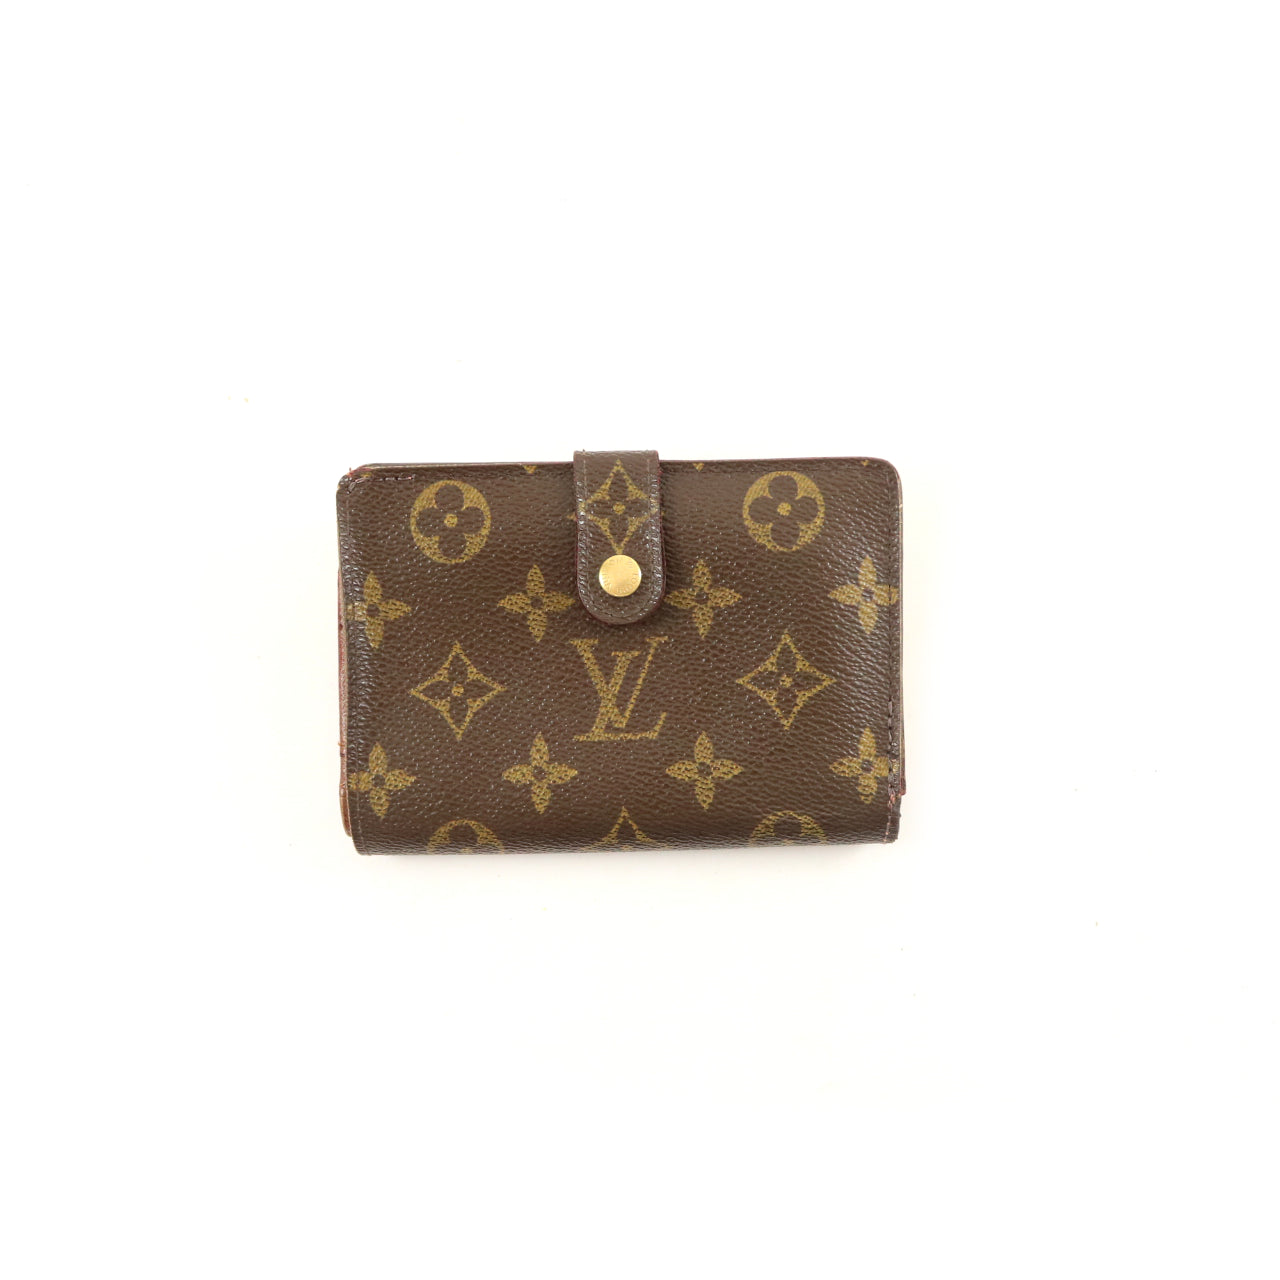 Monogram French Purse Wallet